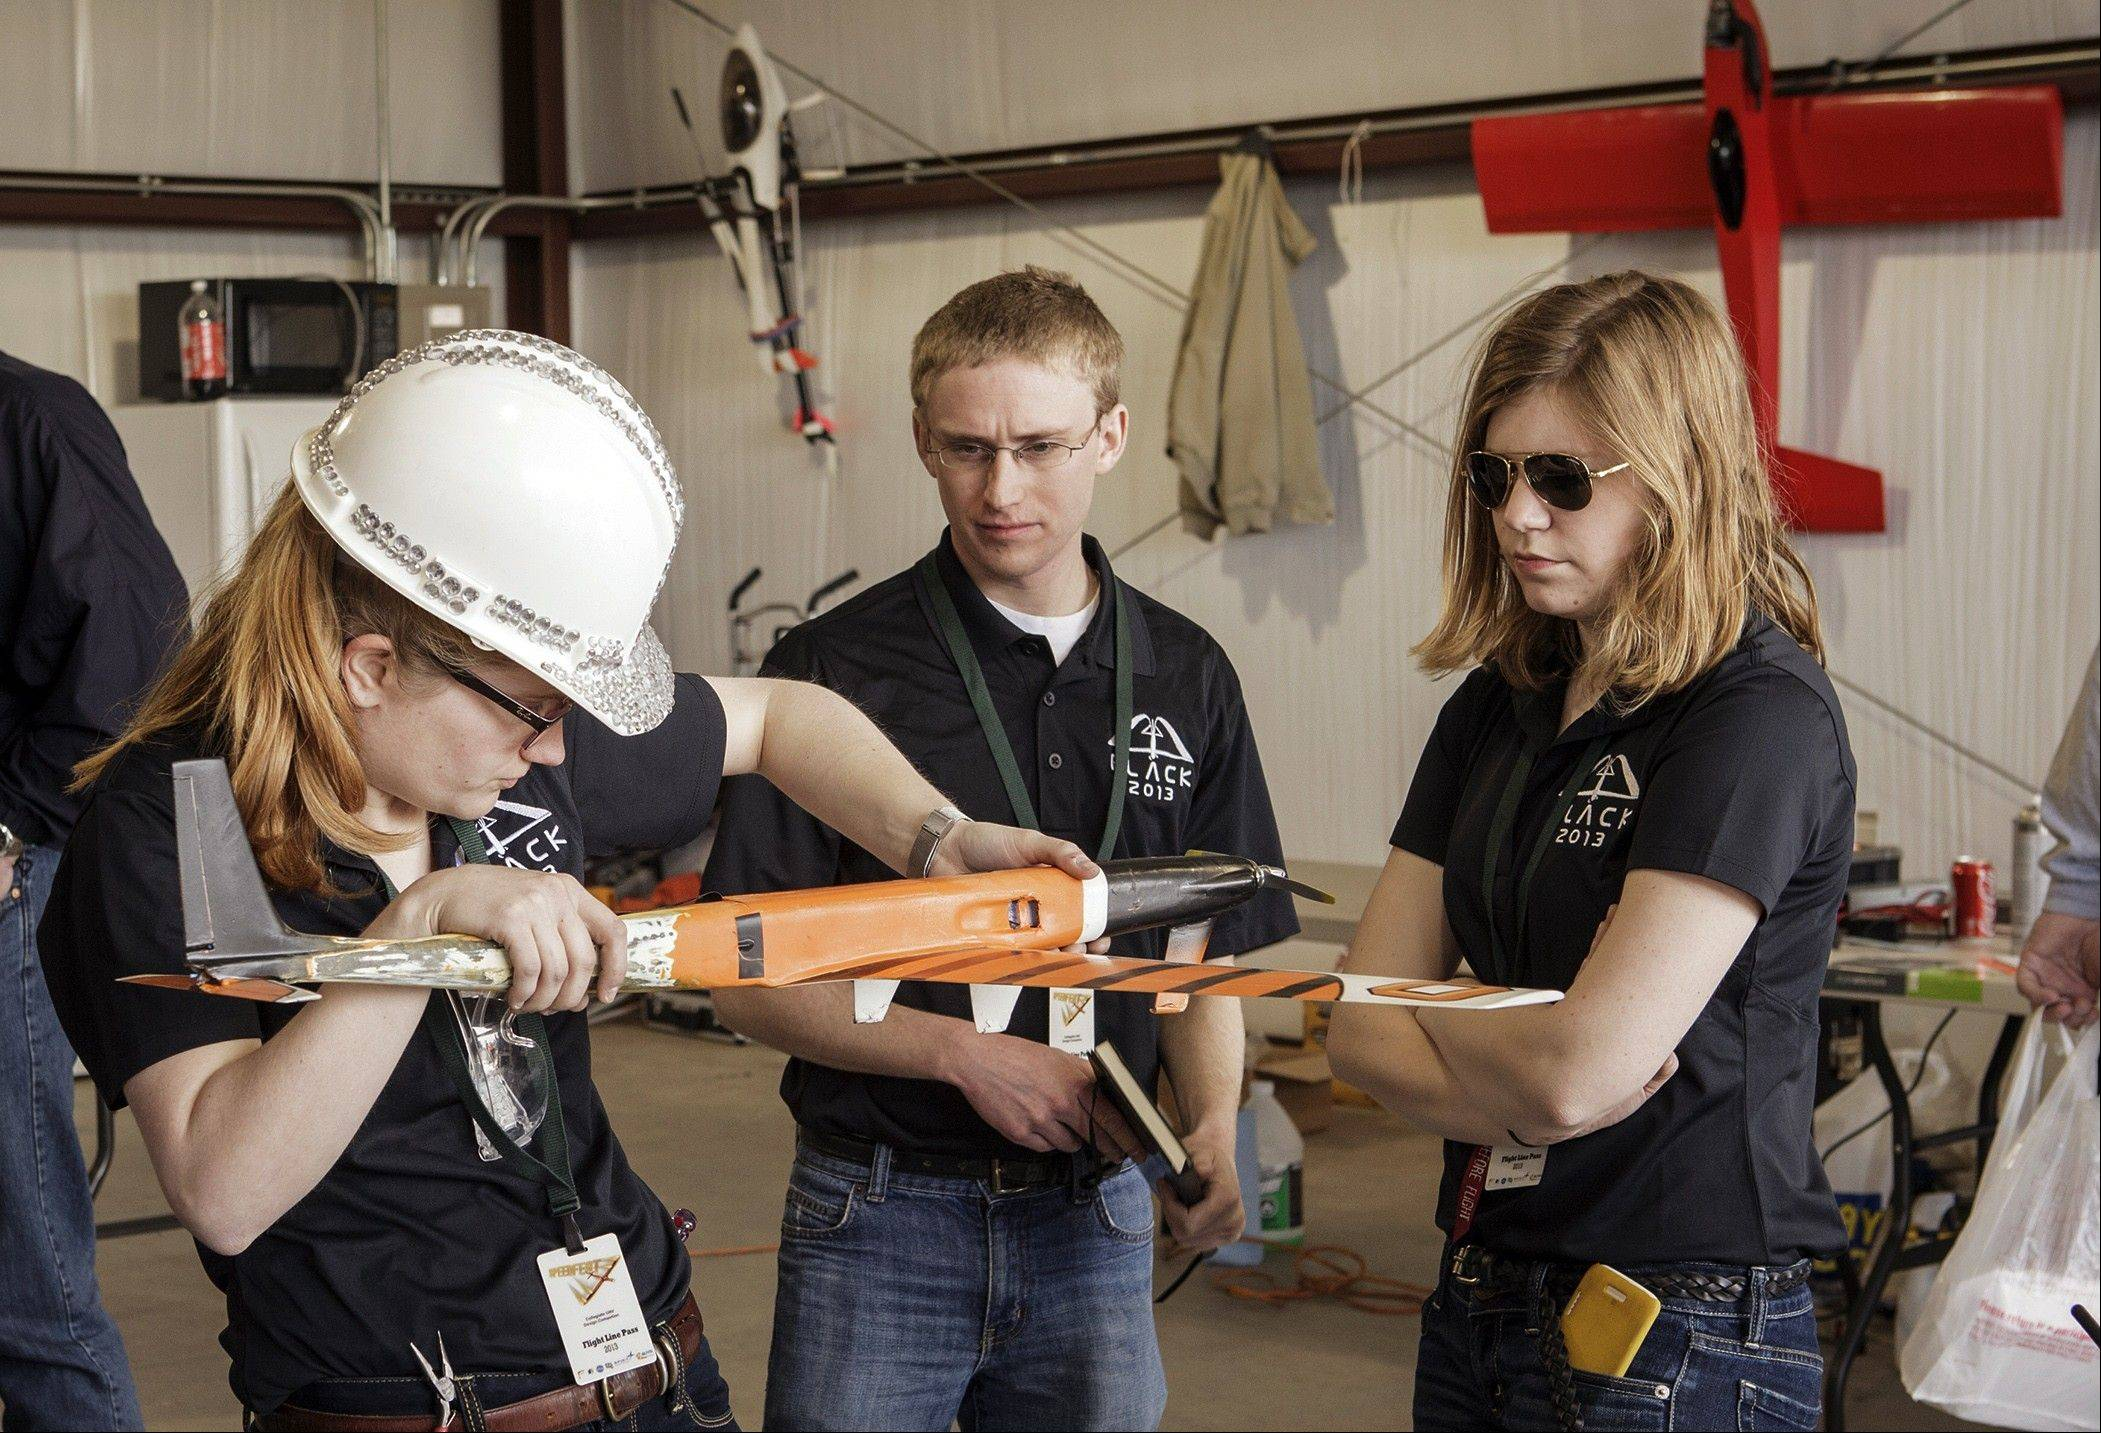 Team Black members from left, Amelia Wilson, Nathan Woody and Alyssa Avery prepare their aircraft for flight during SpeedFest III at Oklahoma State University, in Stillwater, Okla.